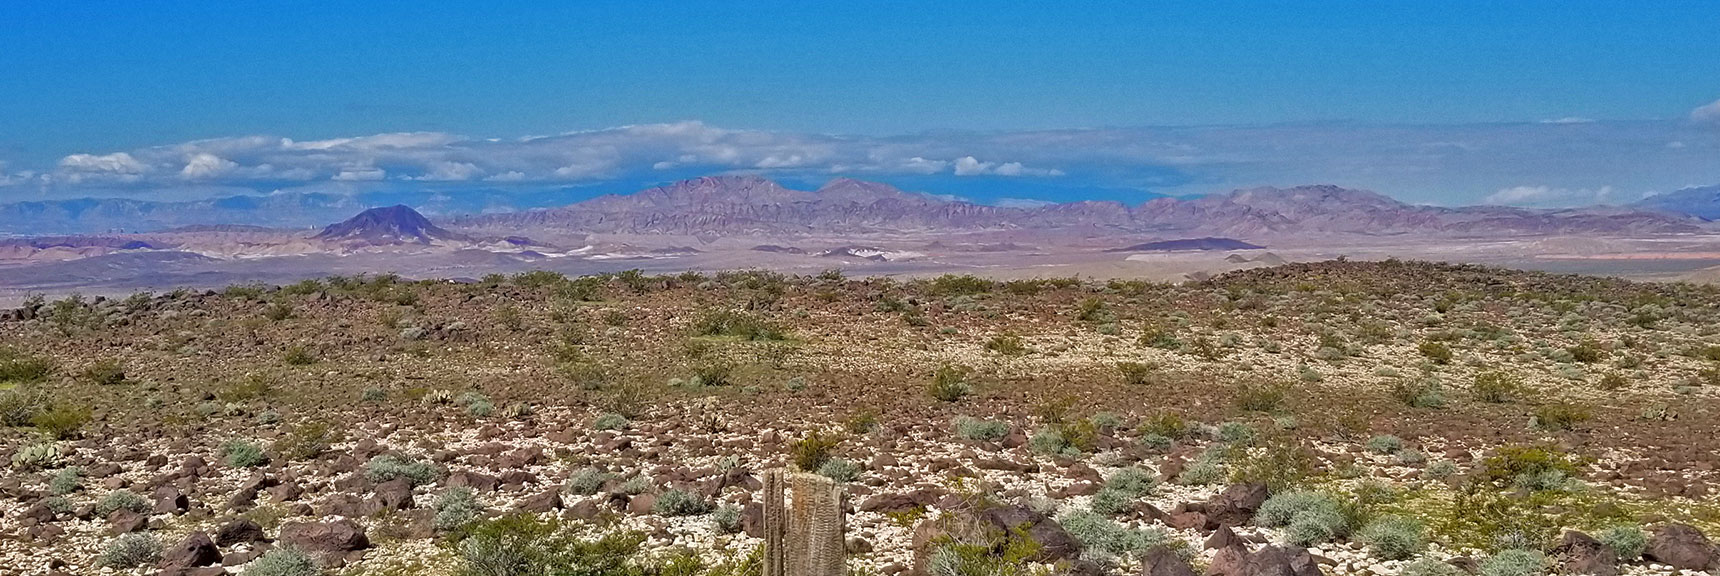 Frenchman Mountain Above Lake Mead National Recreation Area, Nevada, Viewed from Black Mesa Summit